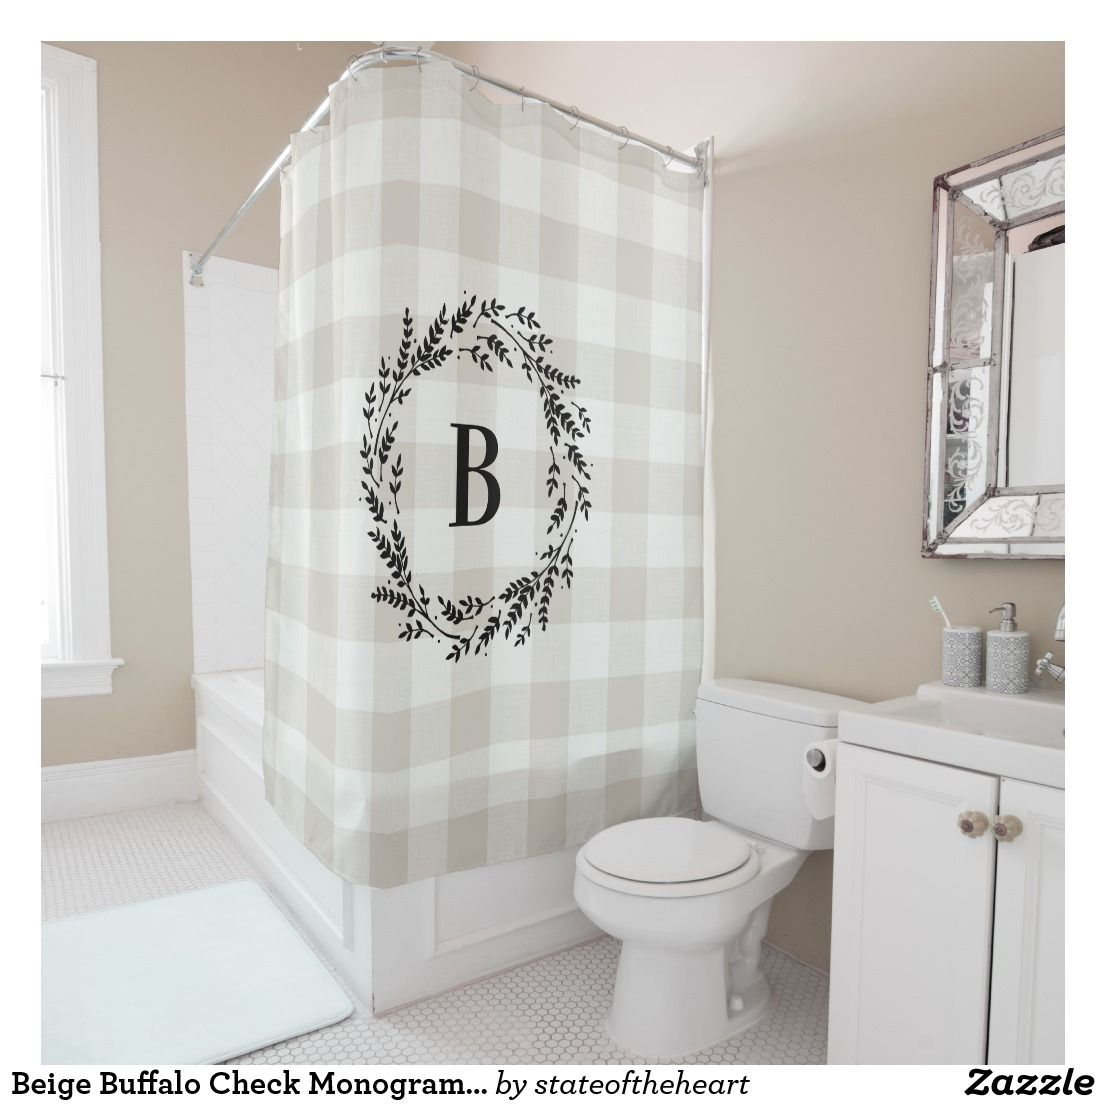 Beige Buffalo Check Monogram Farmhouse Bathroom Shower Curtain